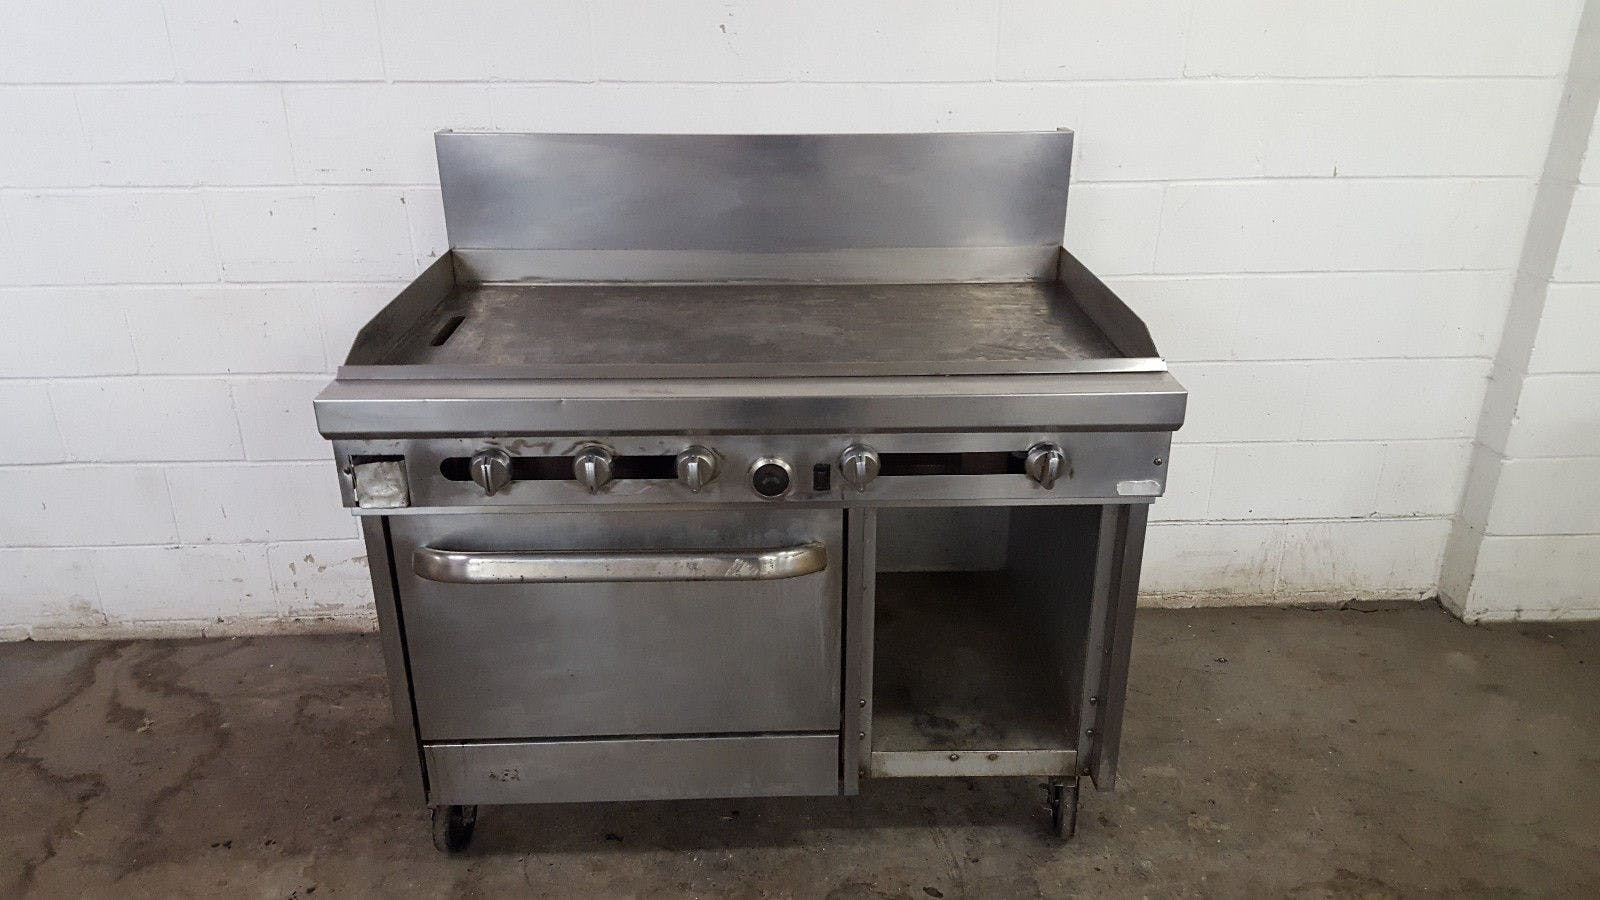 Southbend Full Size Oven Under Storage Grill Natural Gas 548DC-4G Tested